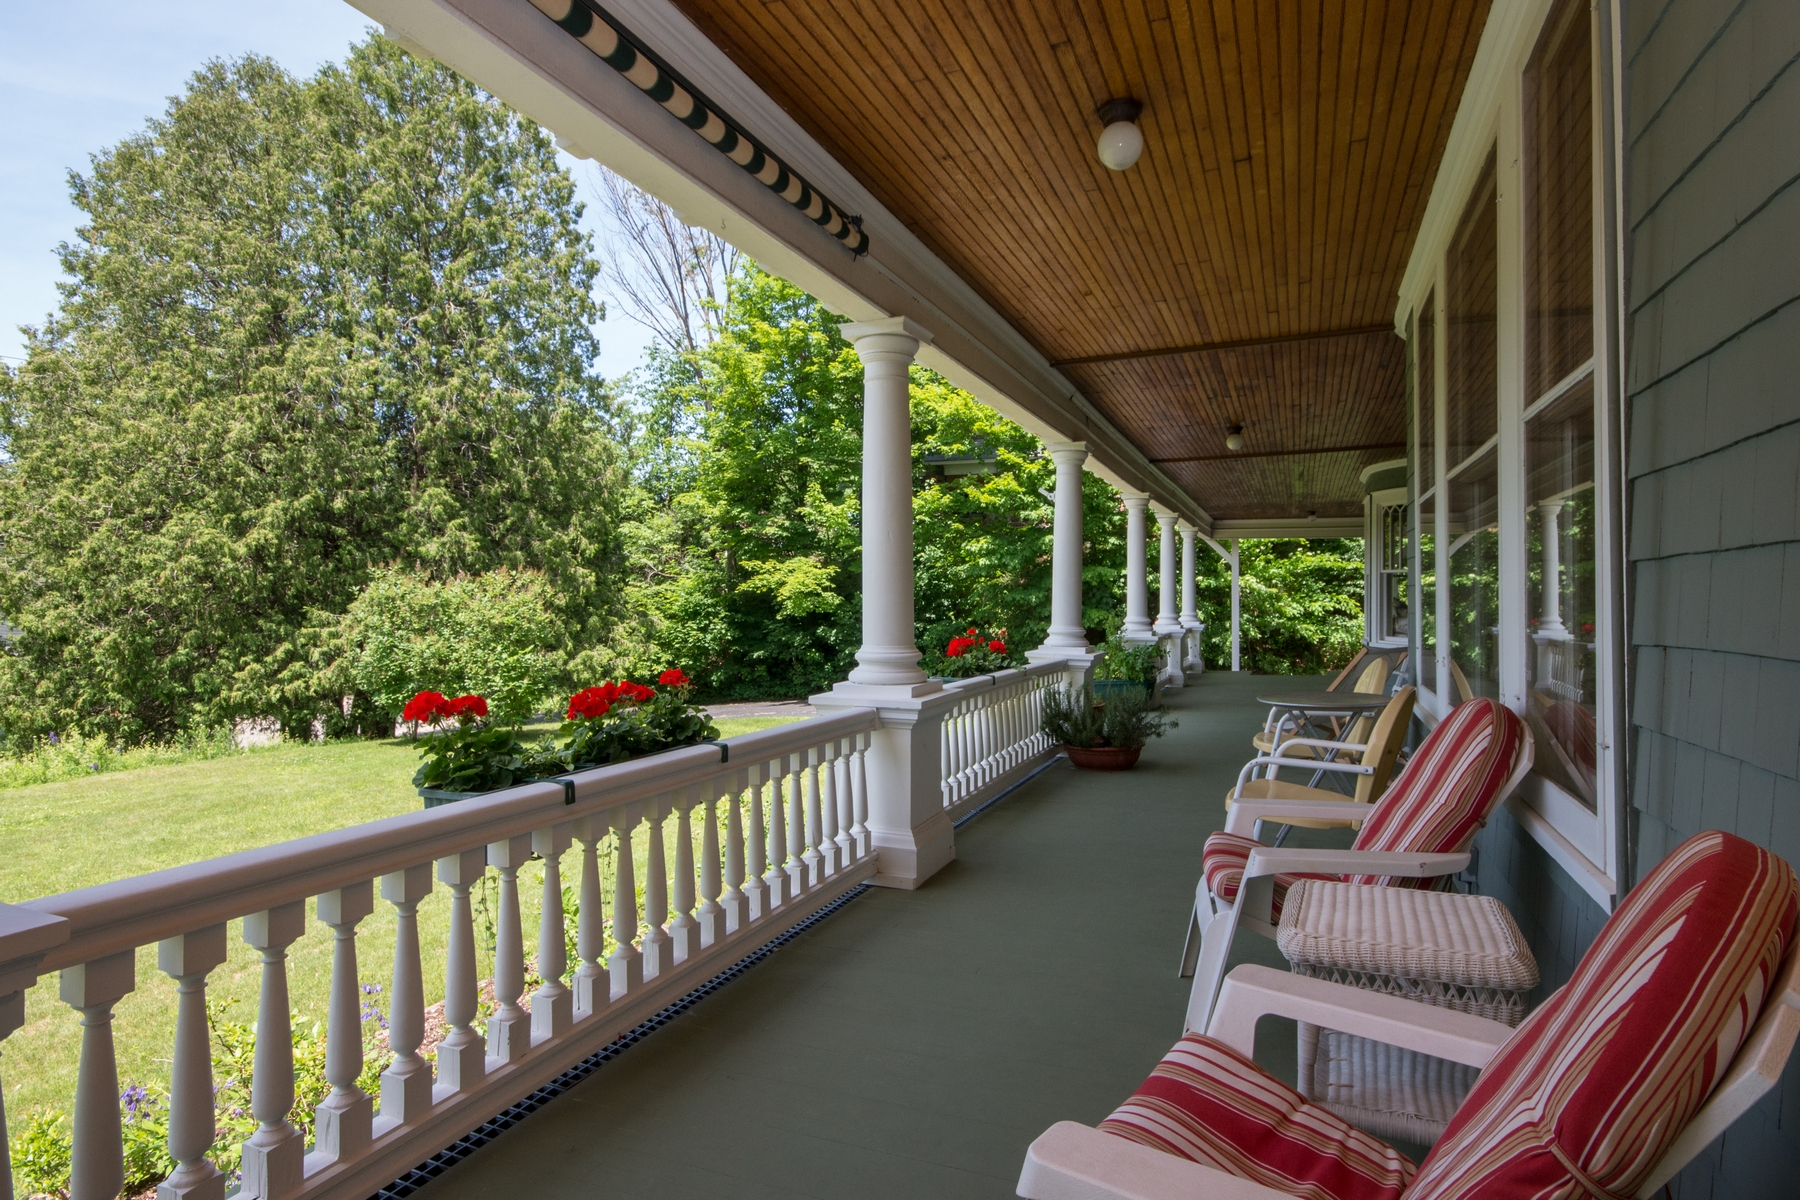 Additional photo for property listing at Franklin Manor 8  Franklin Av Saranac Lake, New York 12983 United States